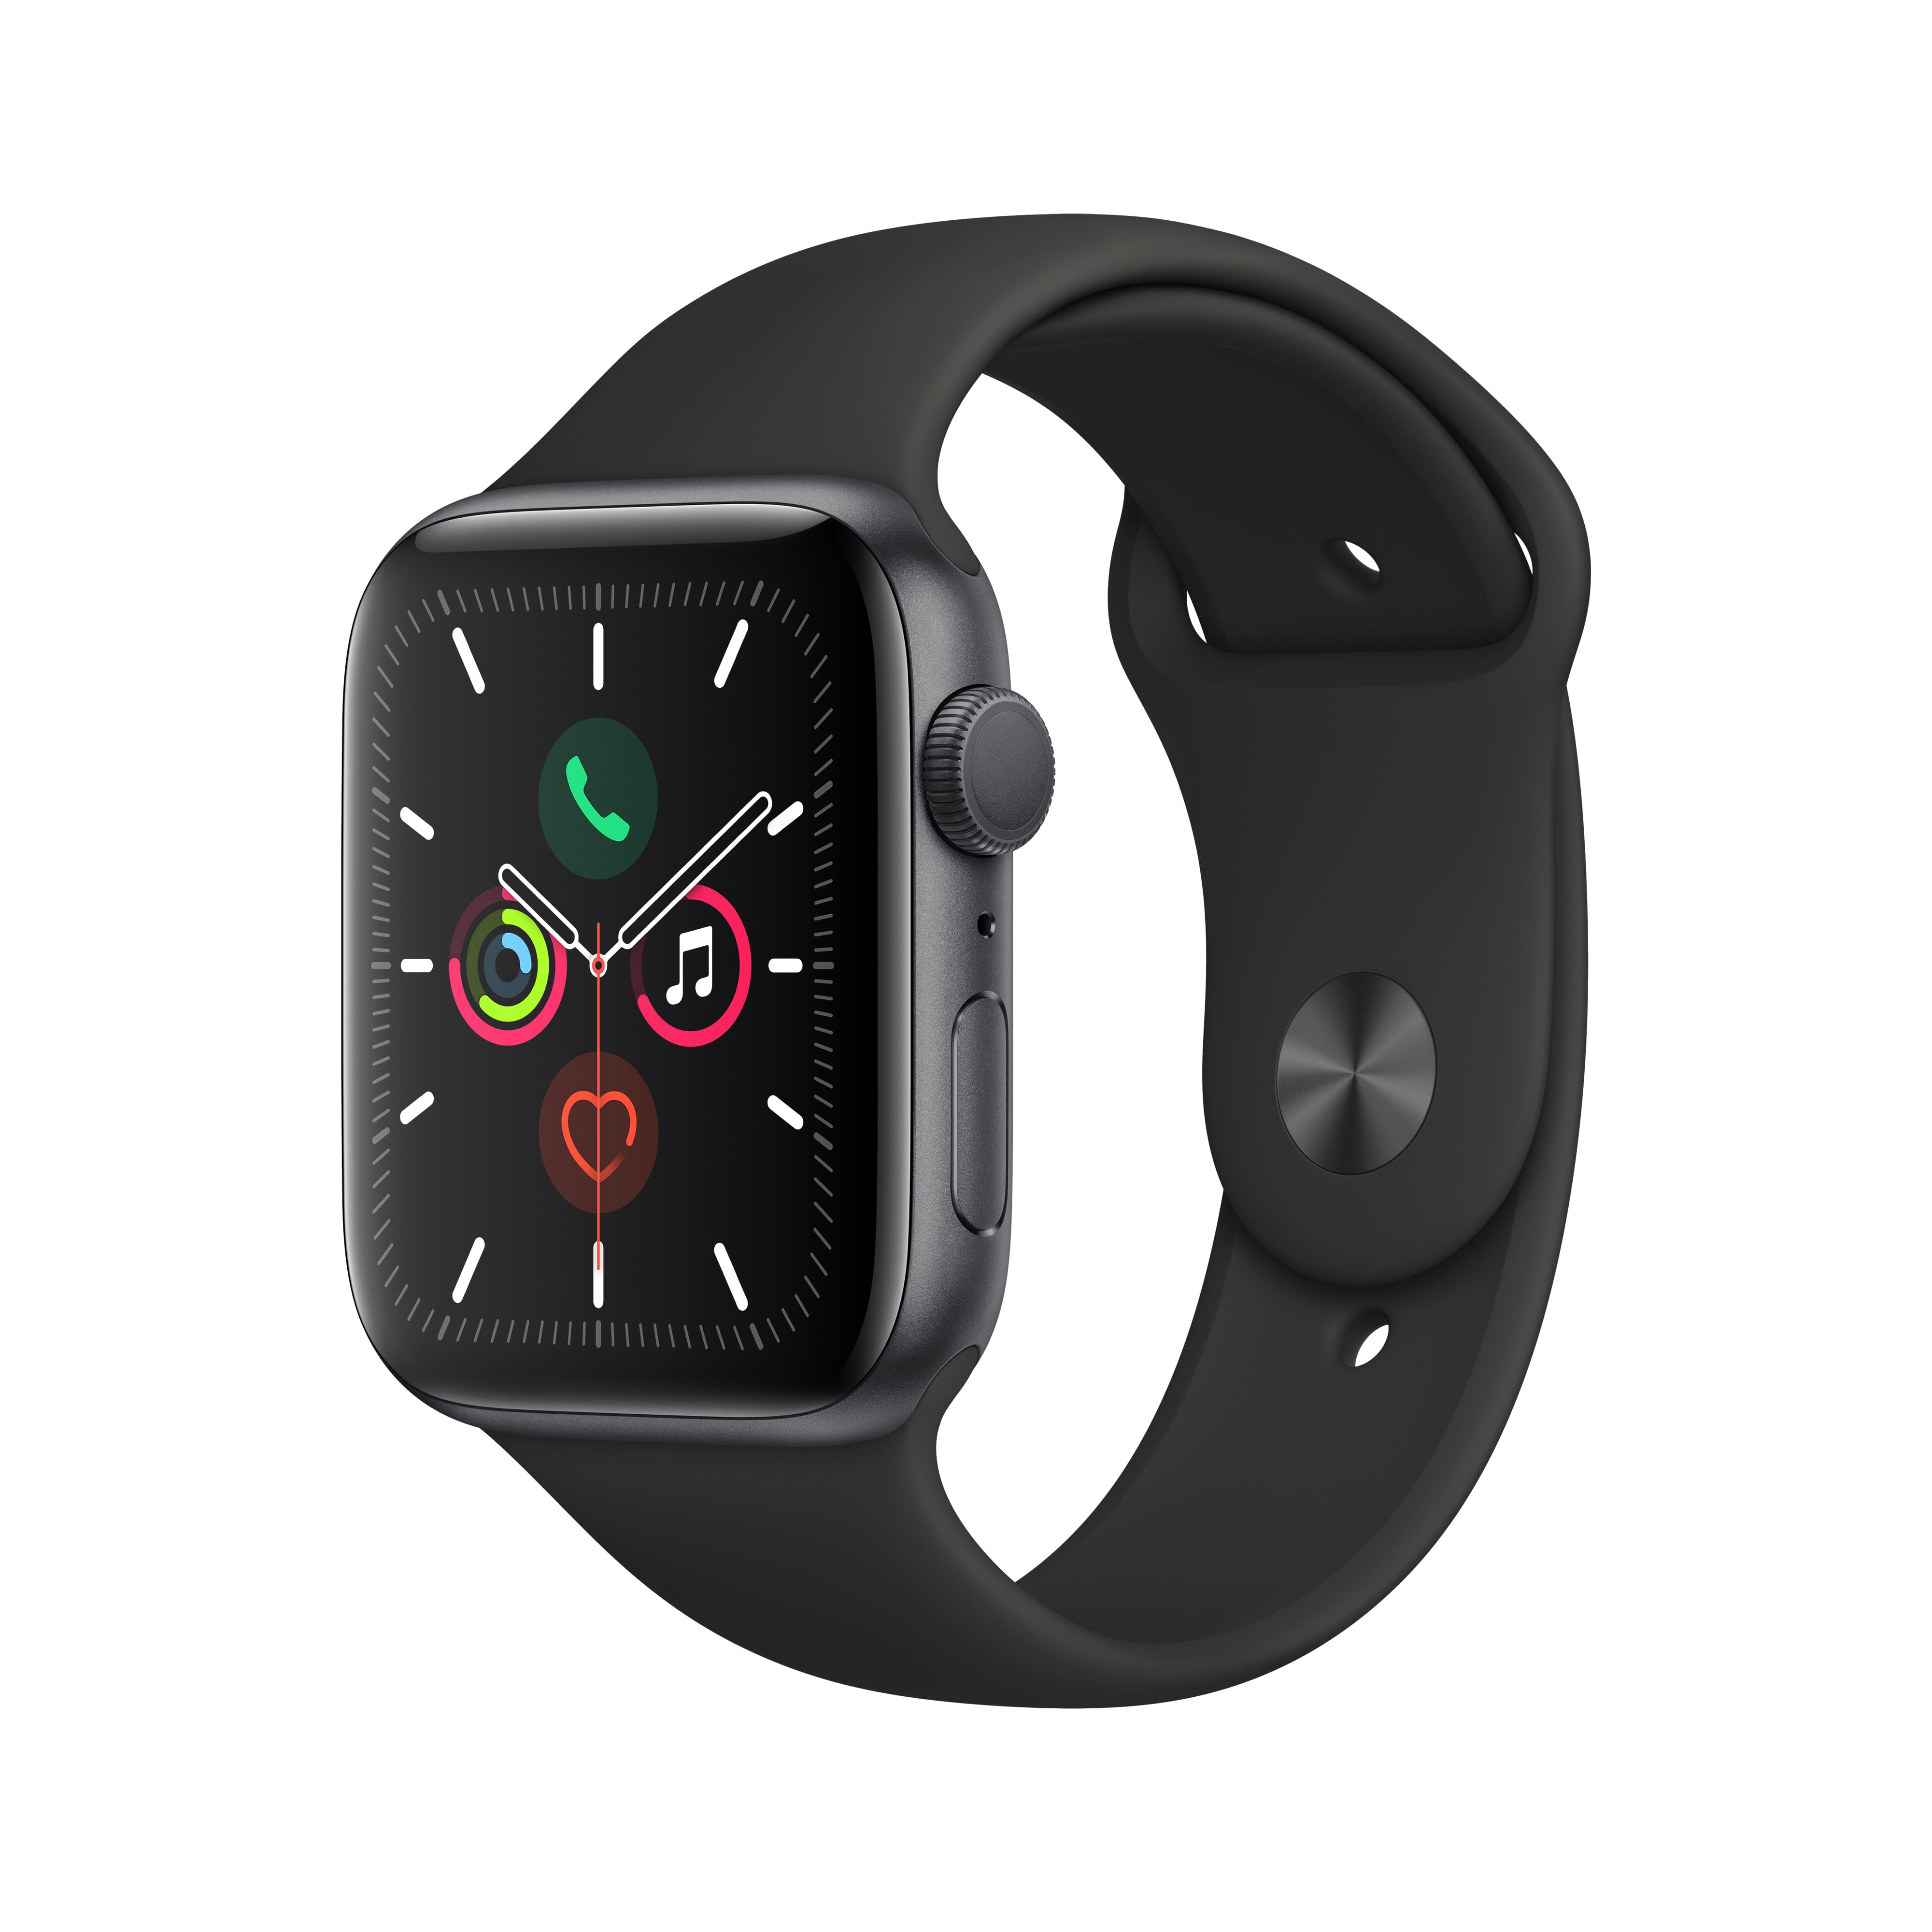 Apple Watch Series 5 GPS, 44mm Space Gray Aluminum Case with Black Sport Band - S/M & M/L $329